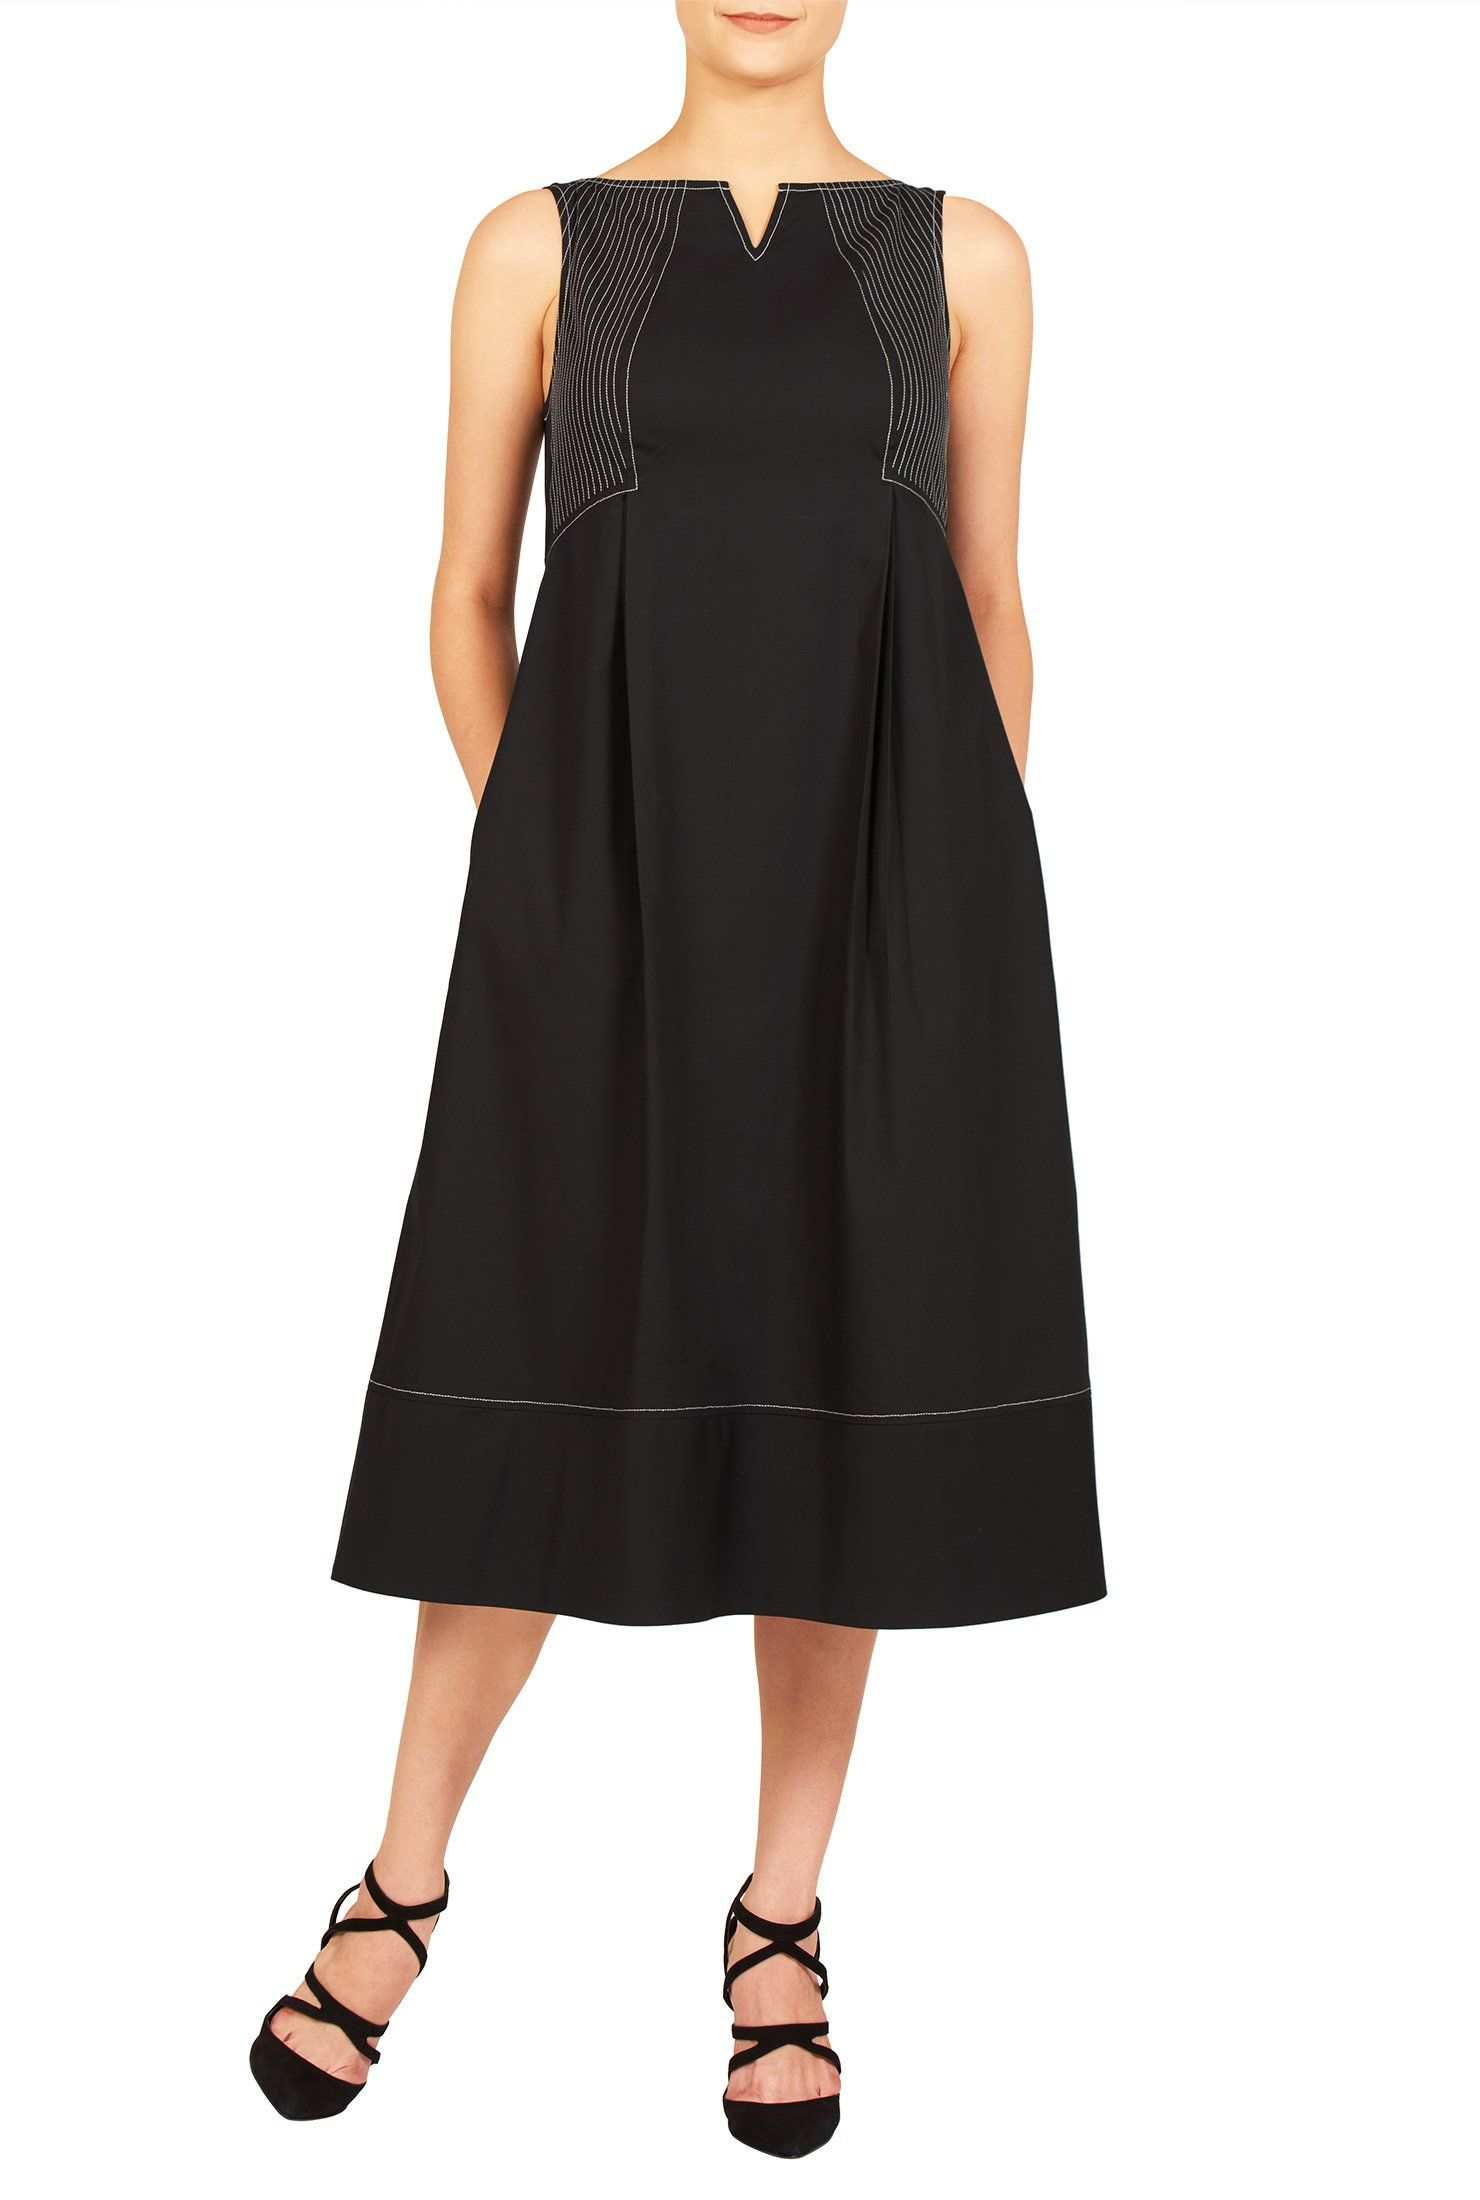 Eshakti womenus seamed cotton poplin dress l short blackgray